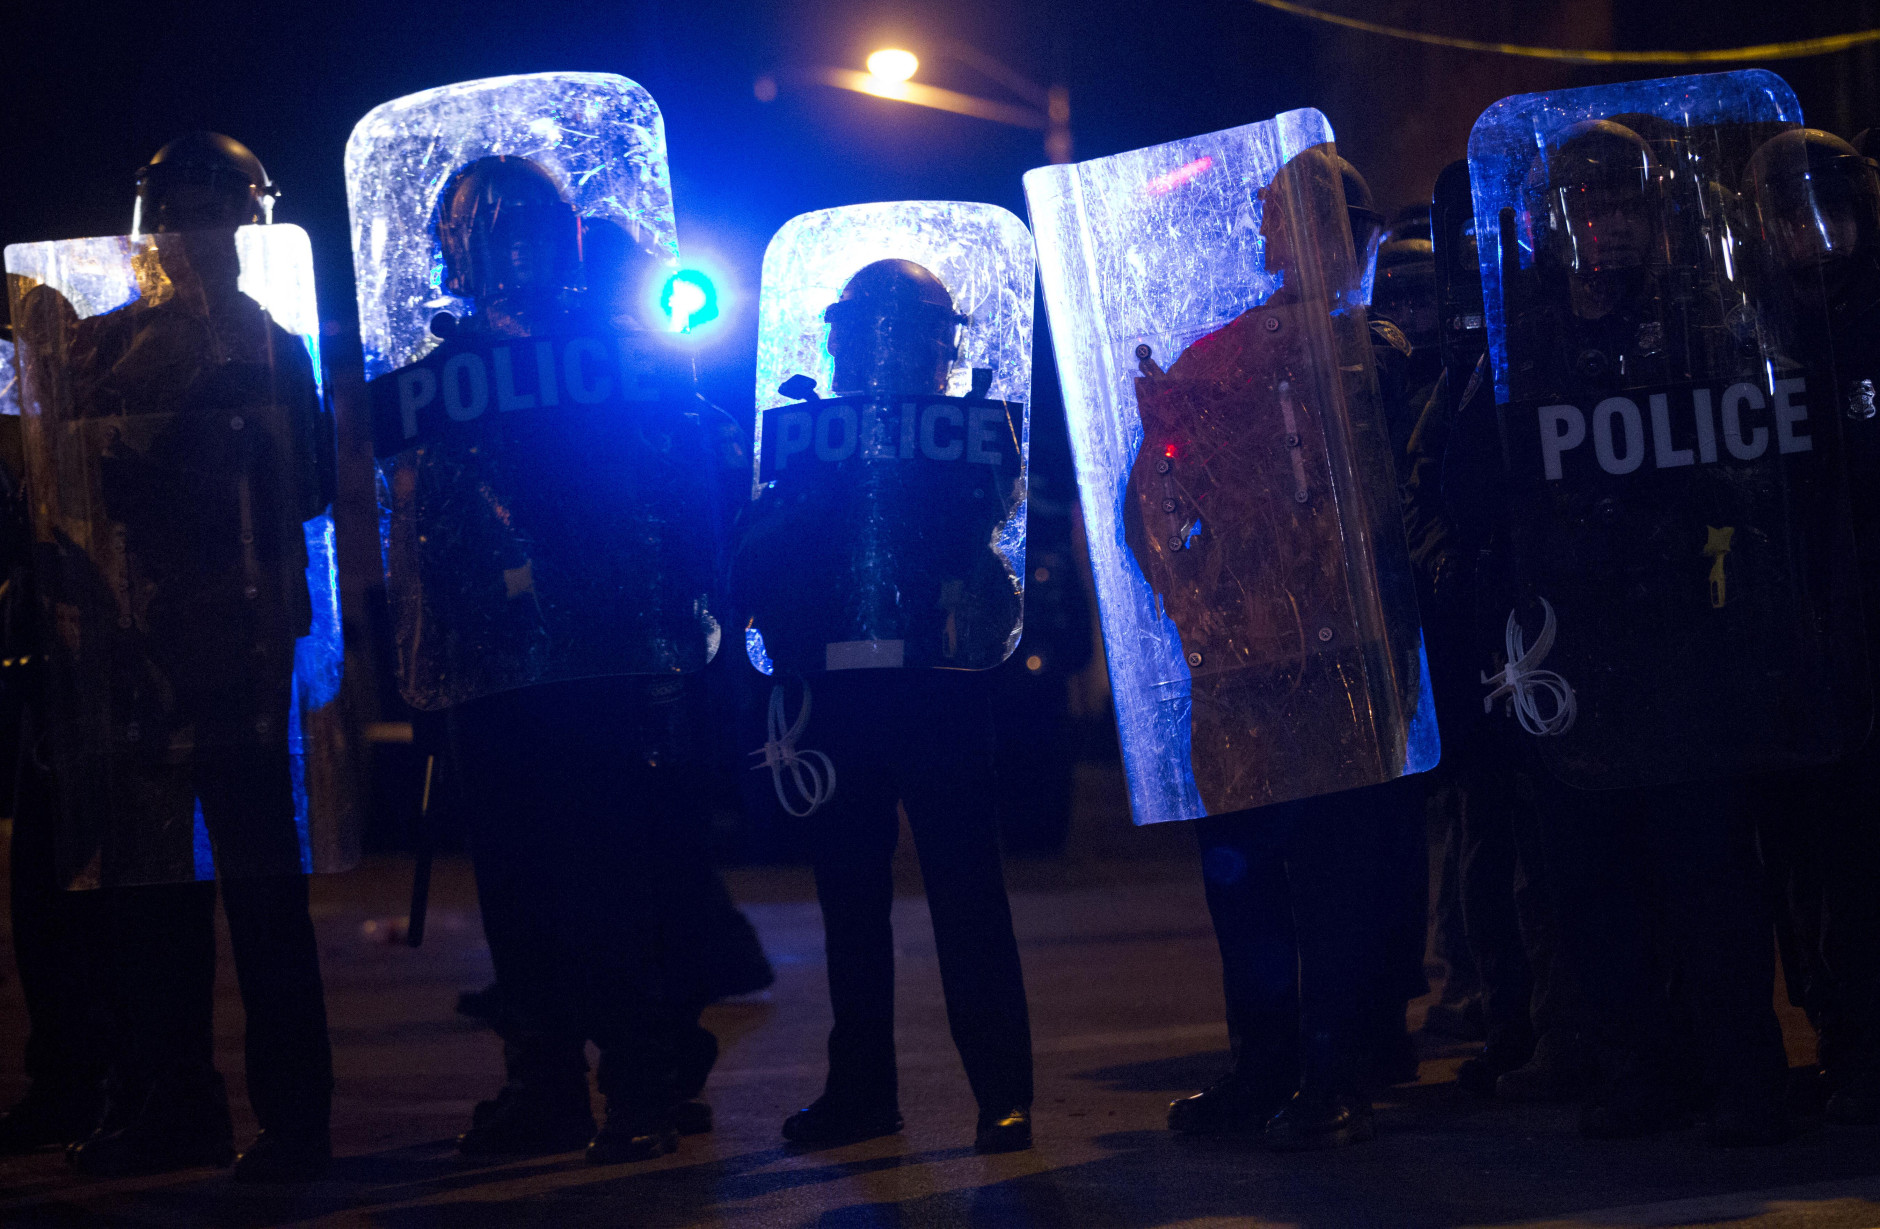 Police advance after the start of a curfew Tuesday, April 28, 2015, in Baltimore. A line of police behind riot shields hurled smoke grenades and fired pepper balls at dozens of protesters to enforce a citywide curfew. (AP Photo/Matt Rourke)